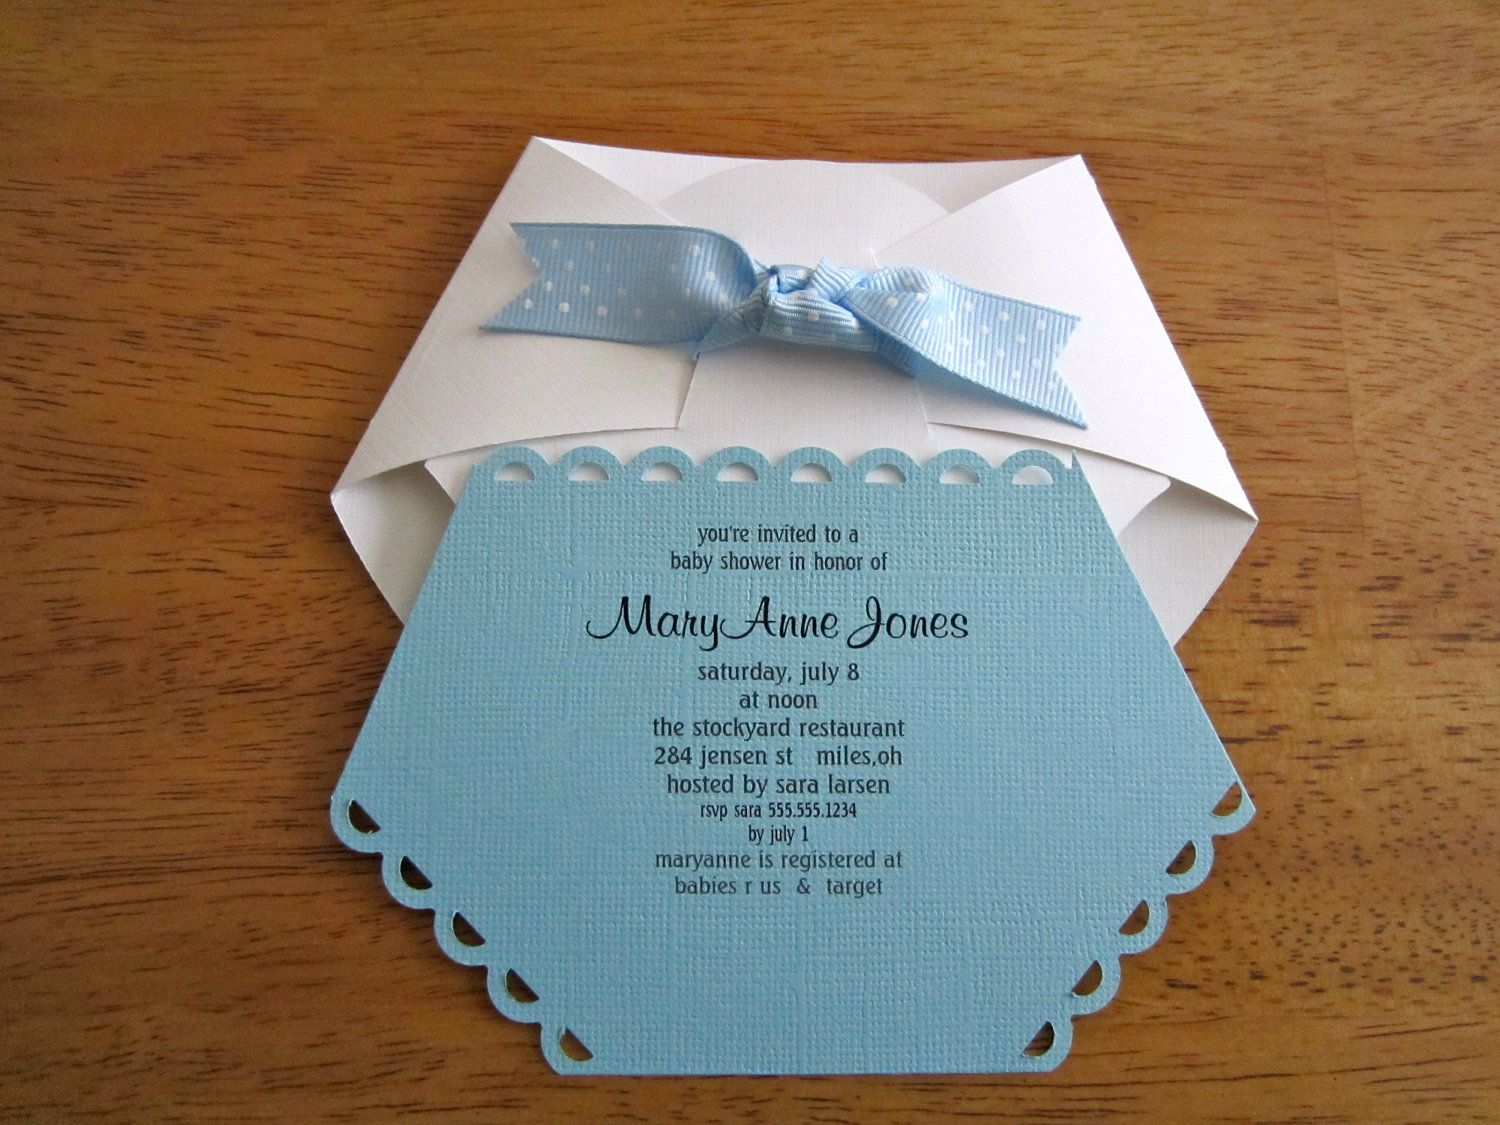 Handmade Baby Shower Invitation - Diaper Shape | Handmade baby ...